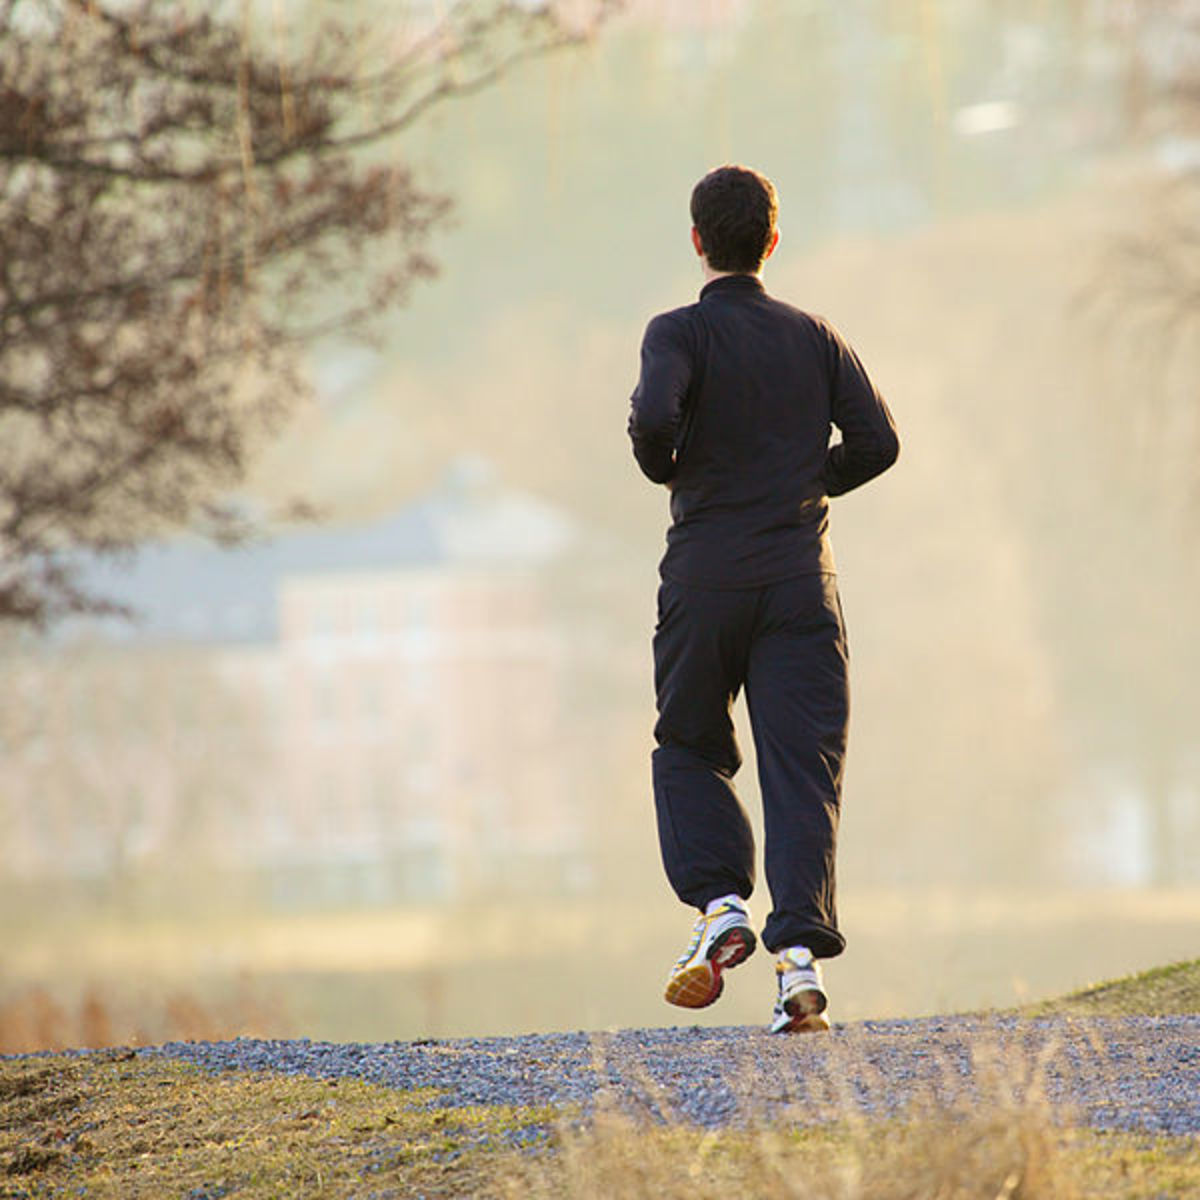 Going for a run in the local park is an excellent way for college students to get exercise, fresh air, and away from studying for a while.